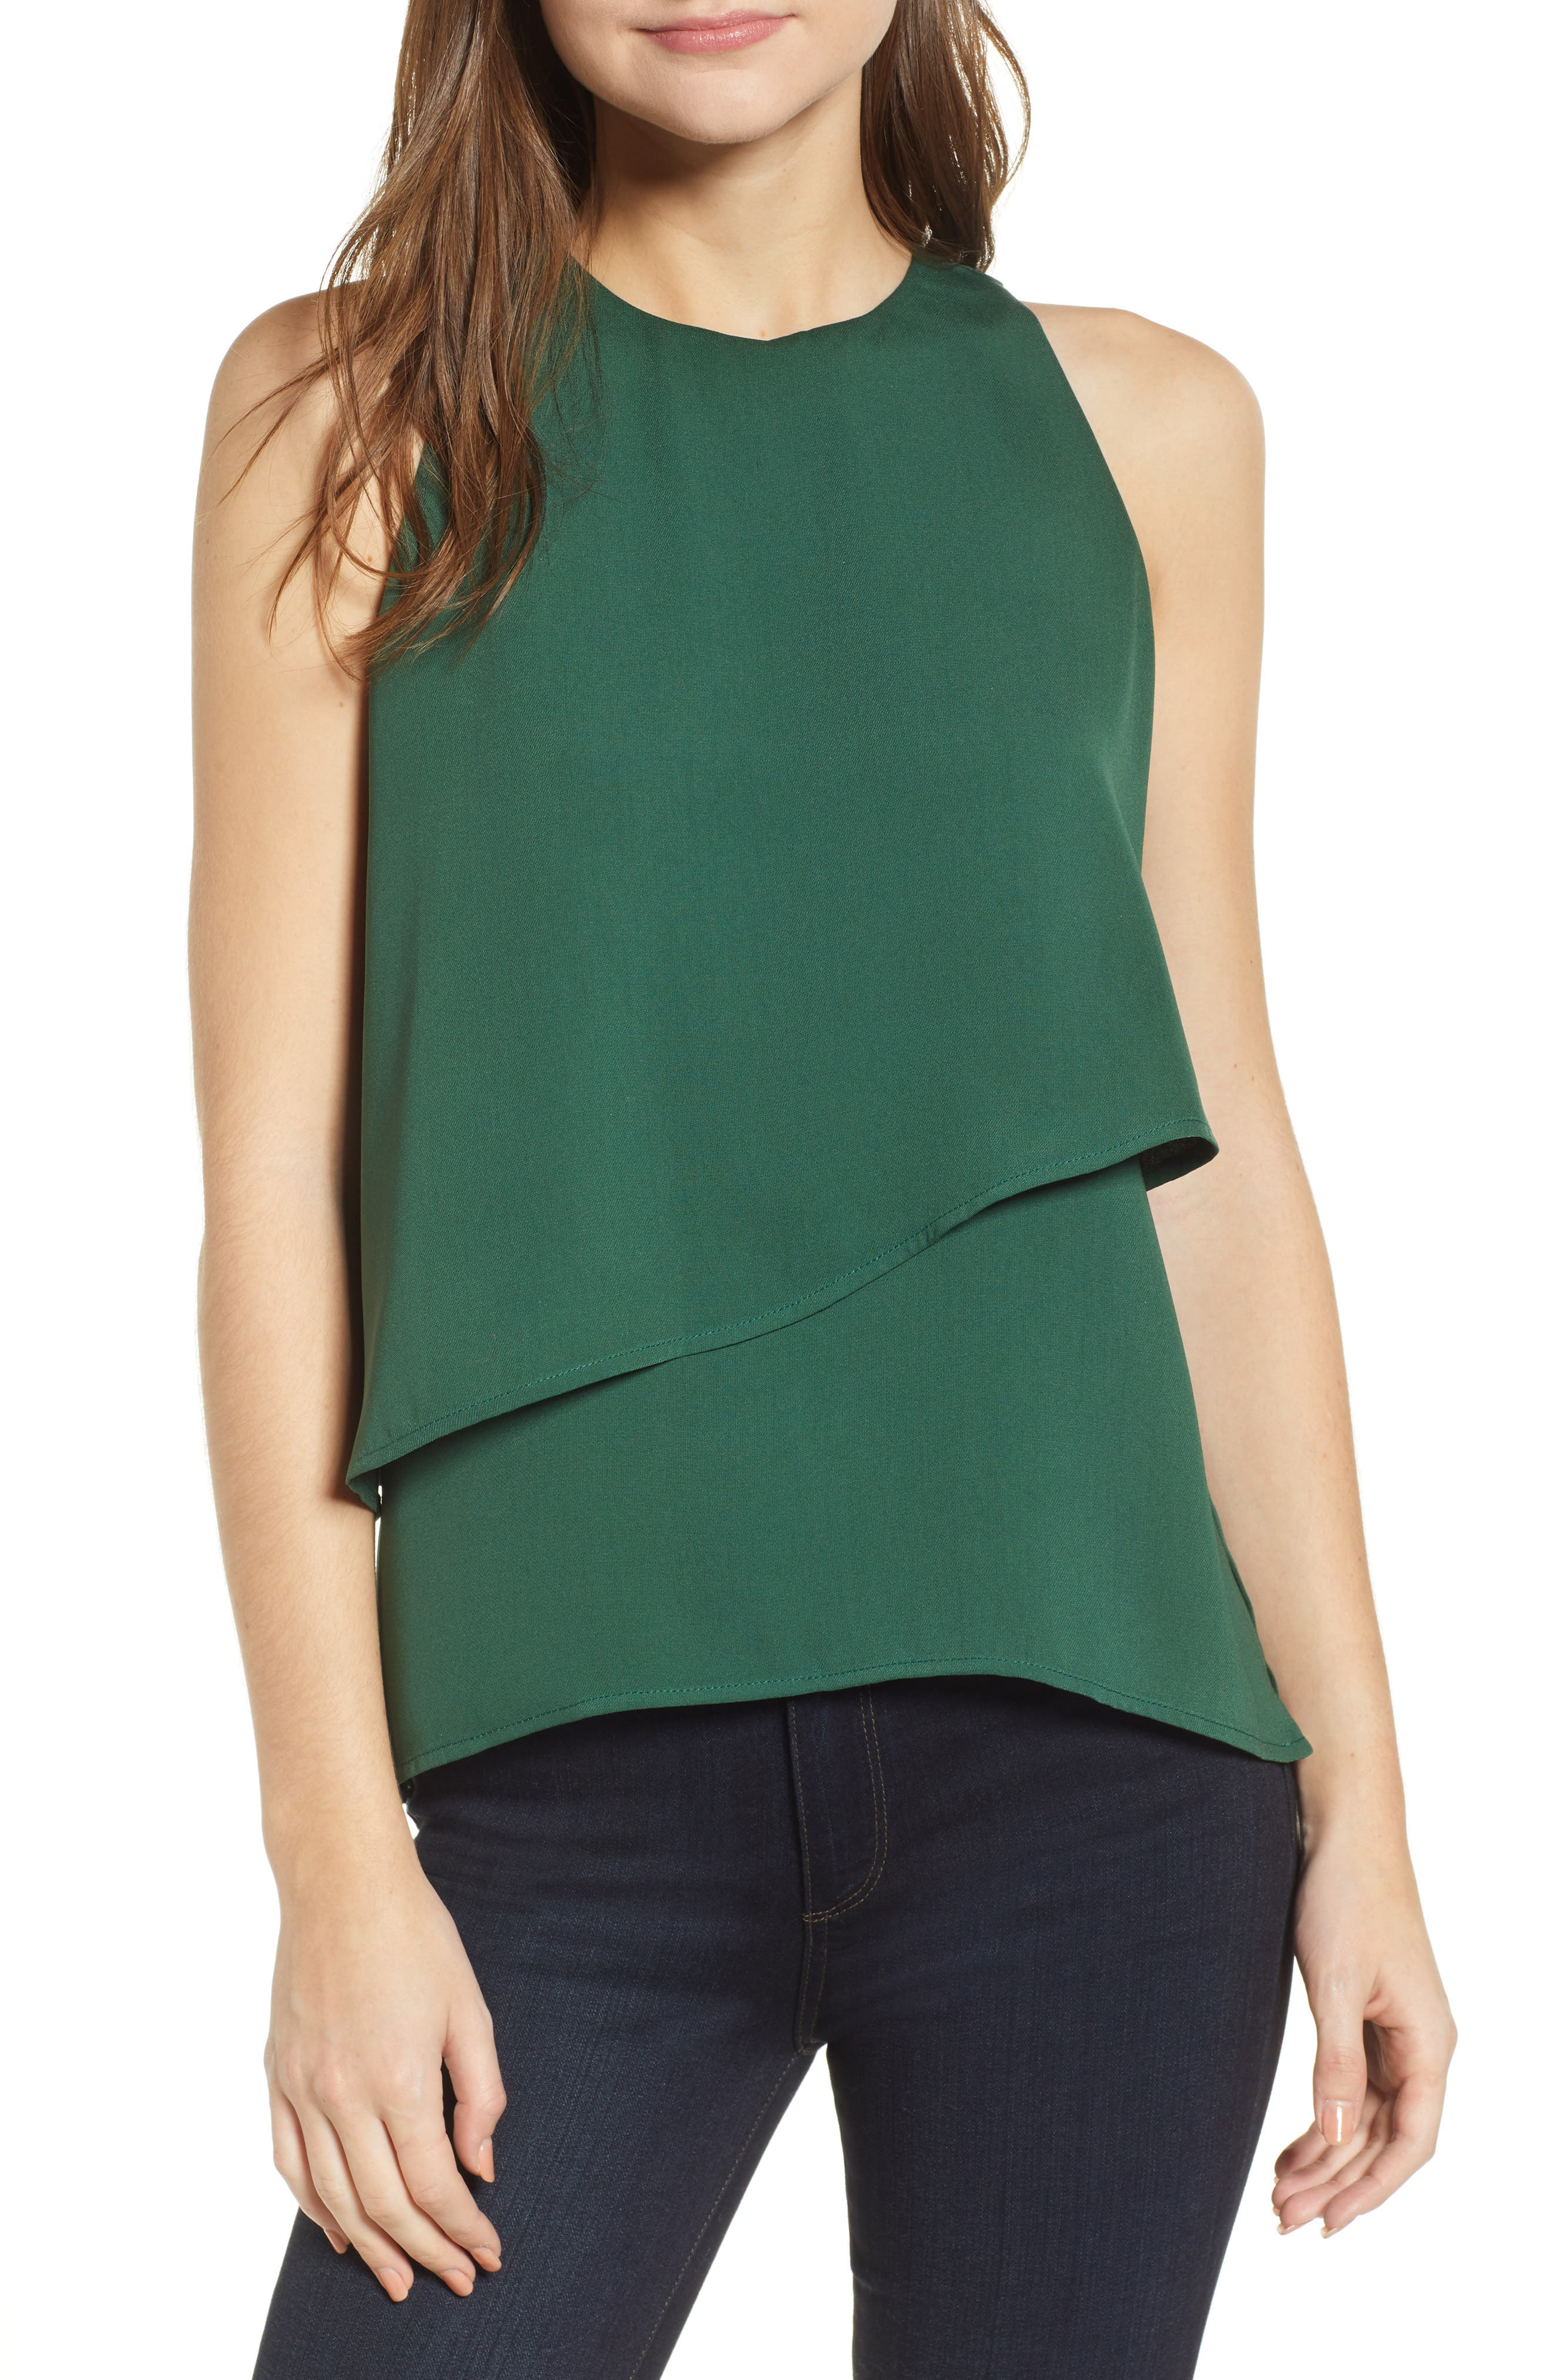 CHELSEA28 Tiered Sleeveless Top, Main, color, 301